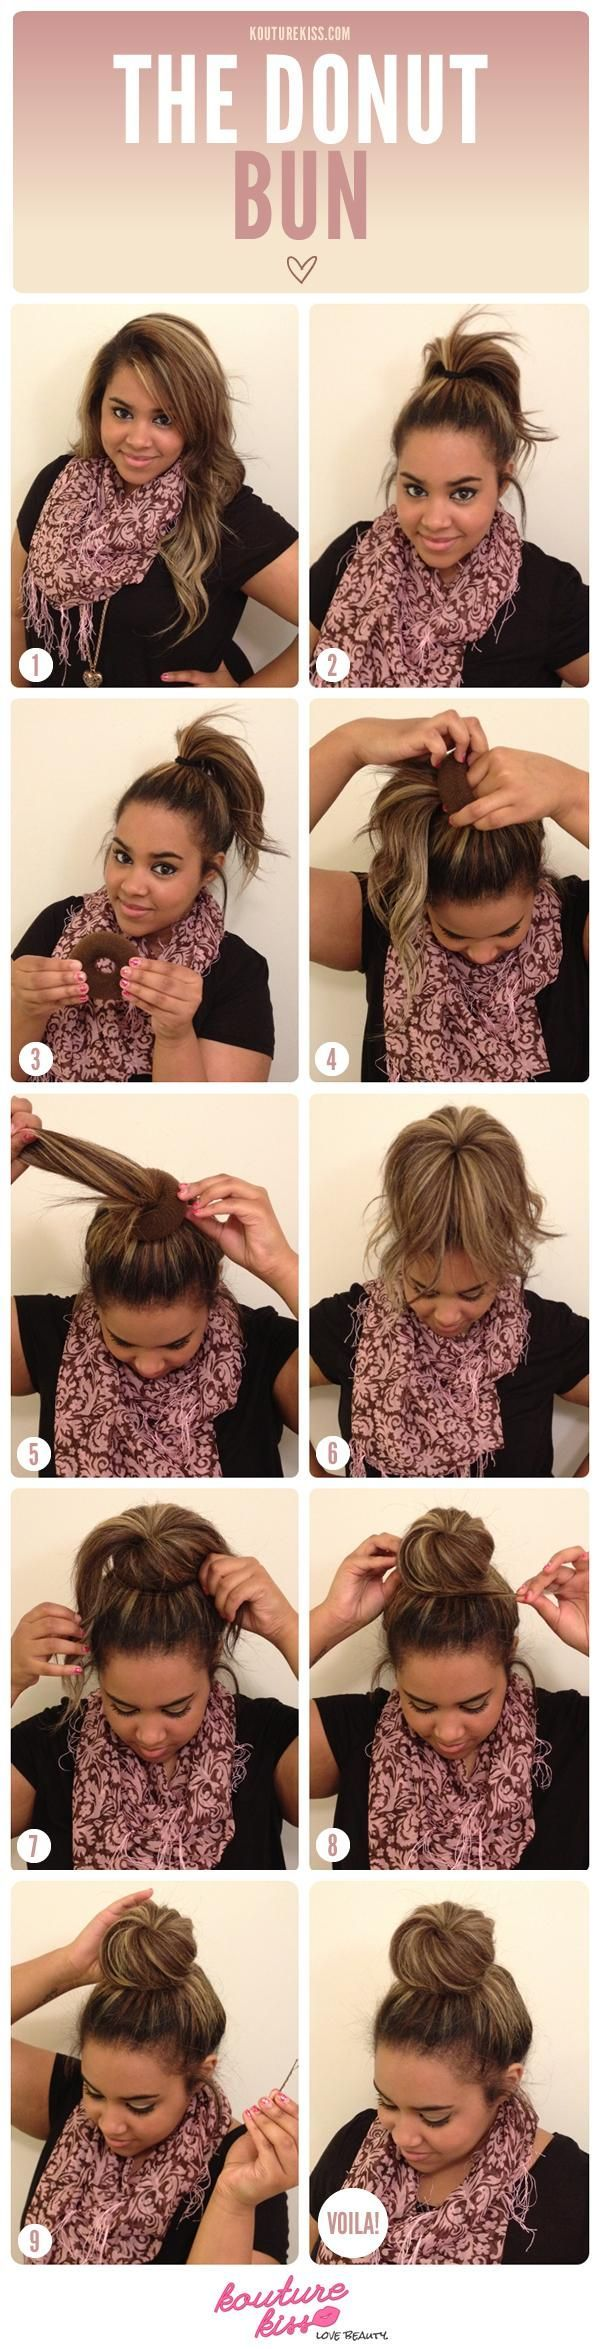 Braided Bun Hair Tutorials For DIY Projects Pony Gaming And - Hairstyle bun tutorials